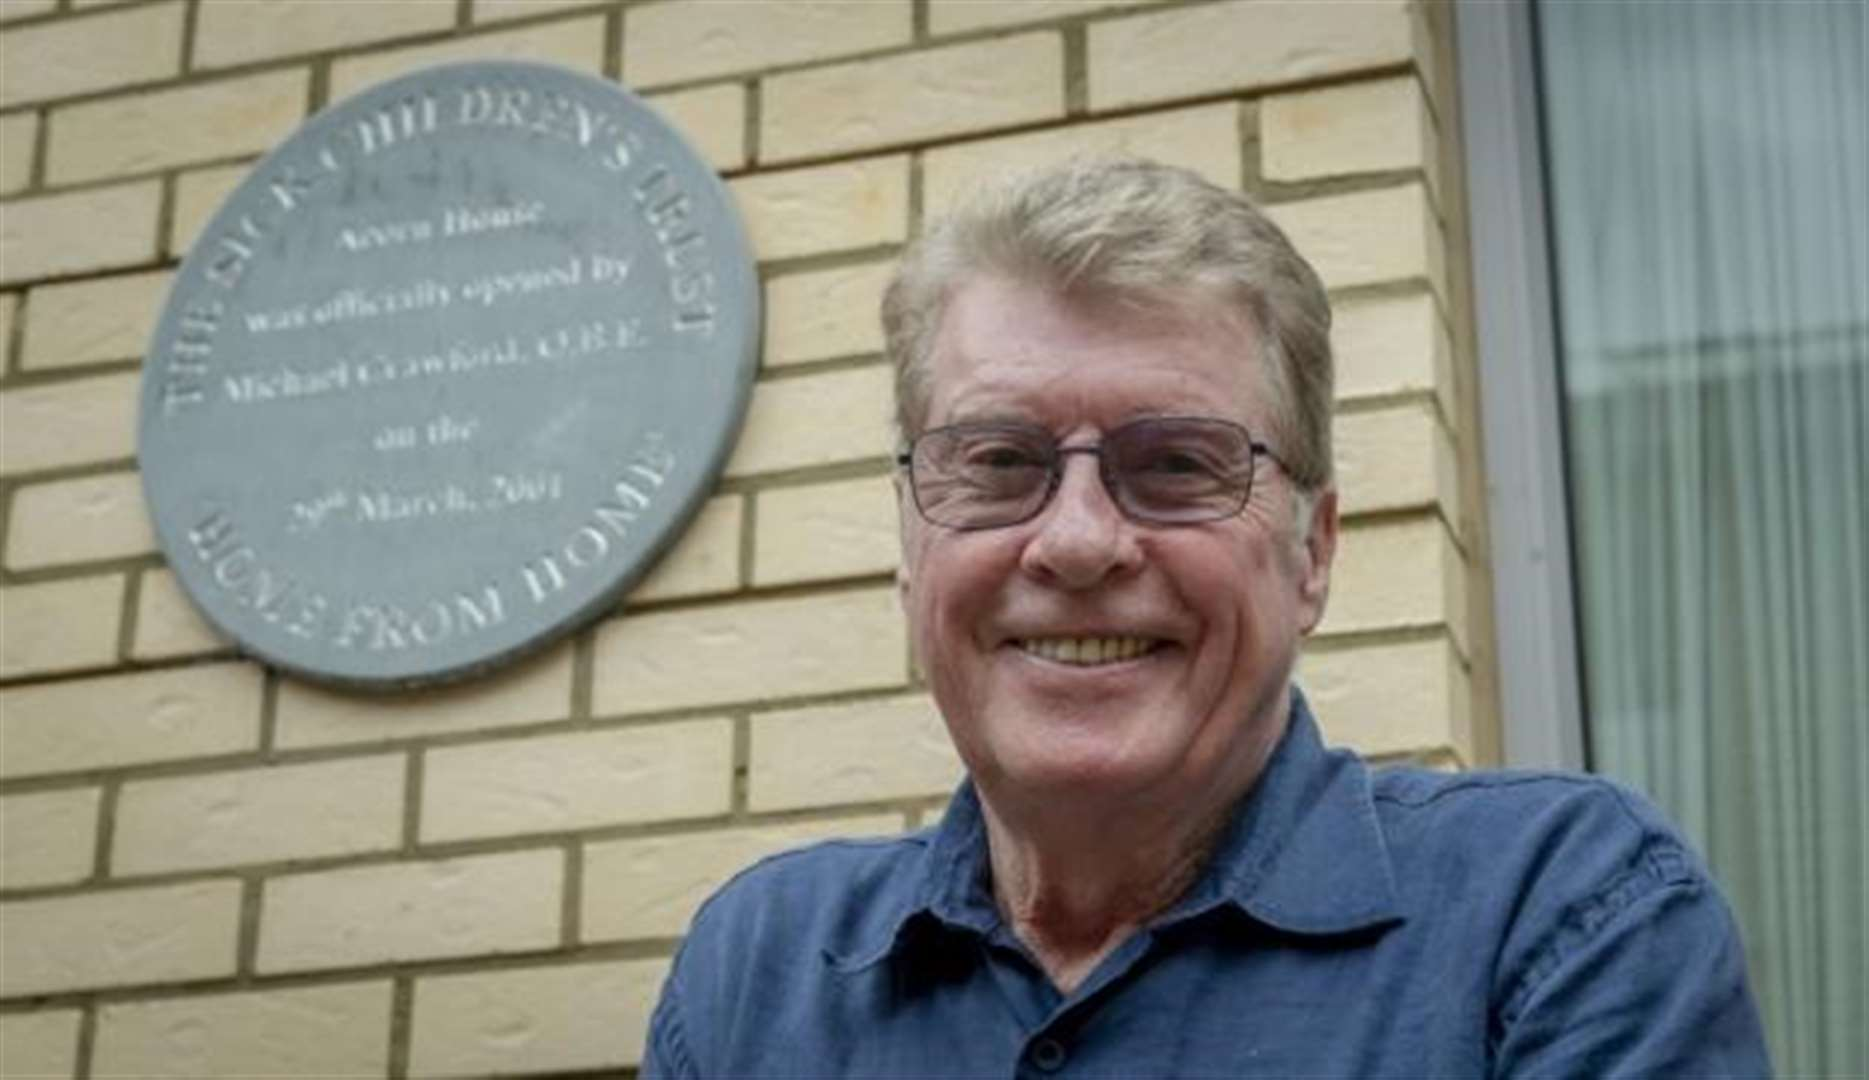 Michael Crawford speaks of his love for the Sick Children's Trust's Acorn House at Addenbrooke's